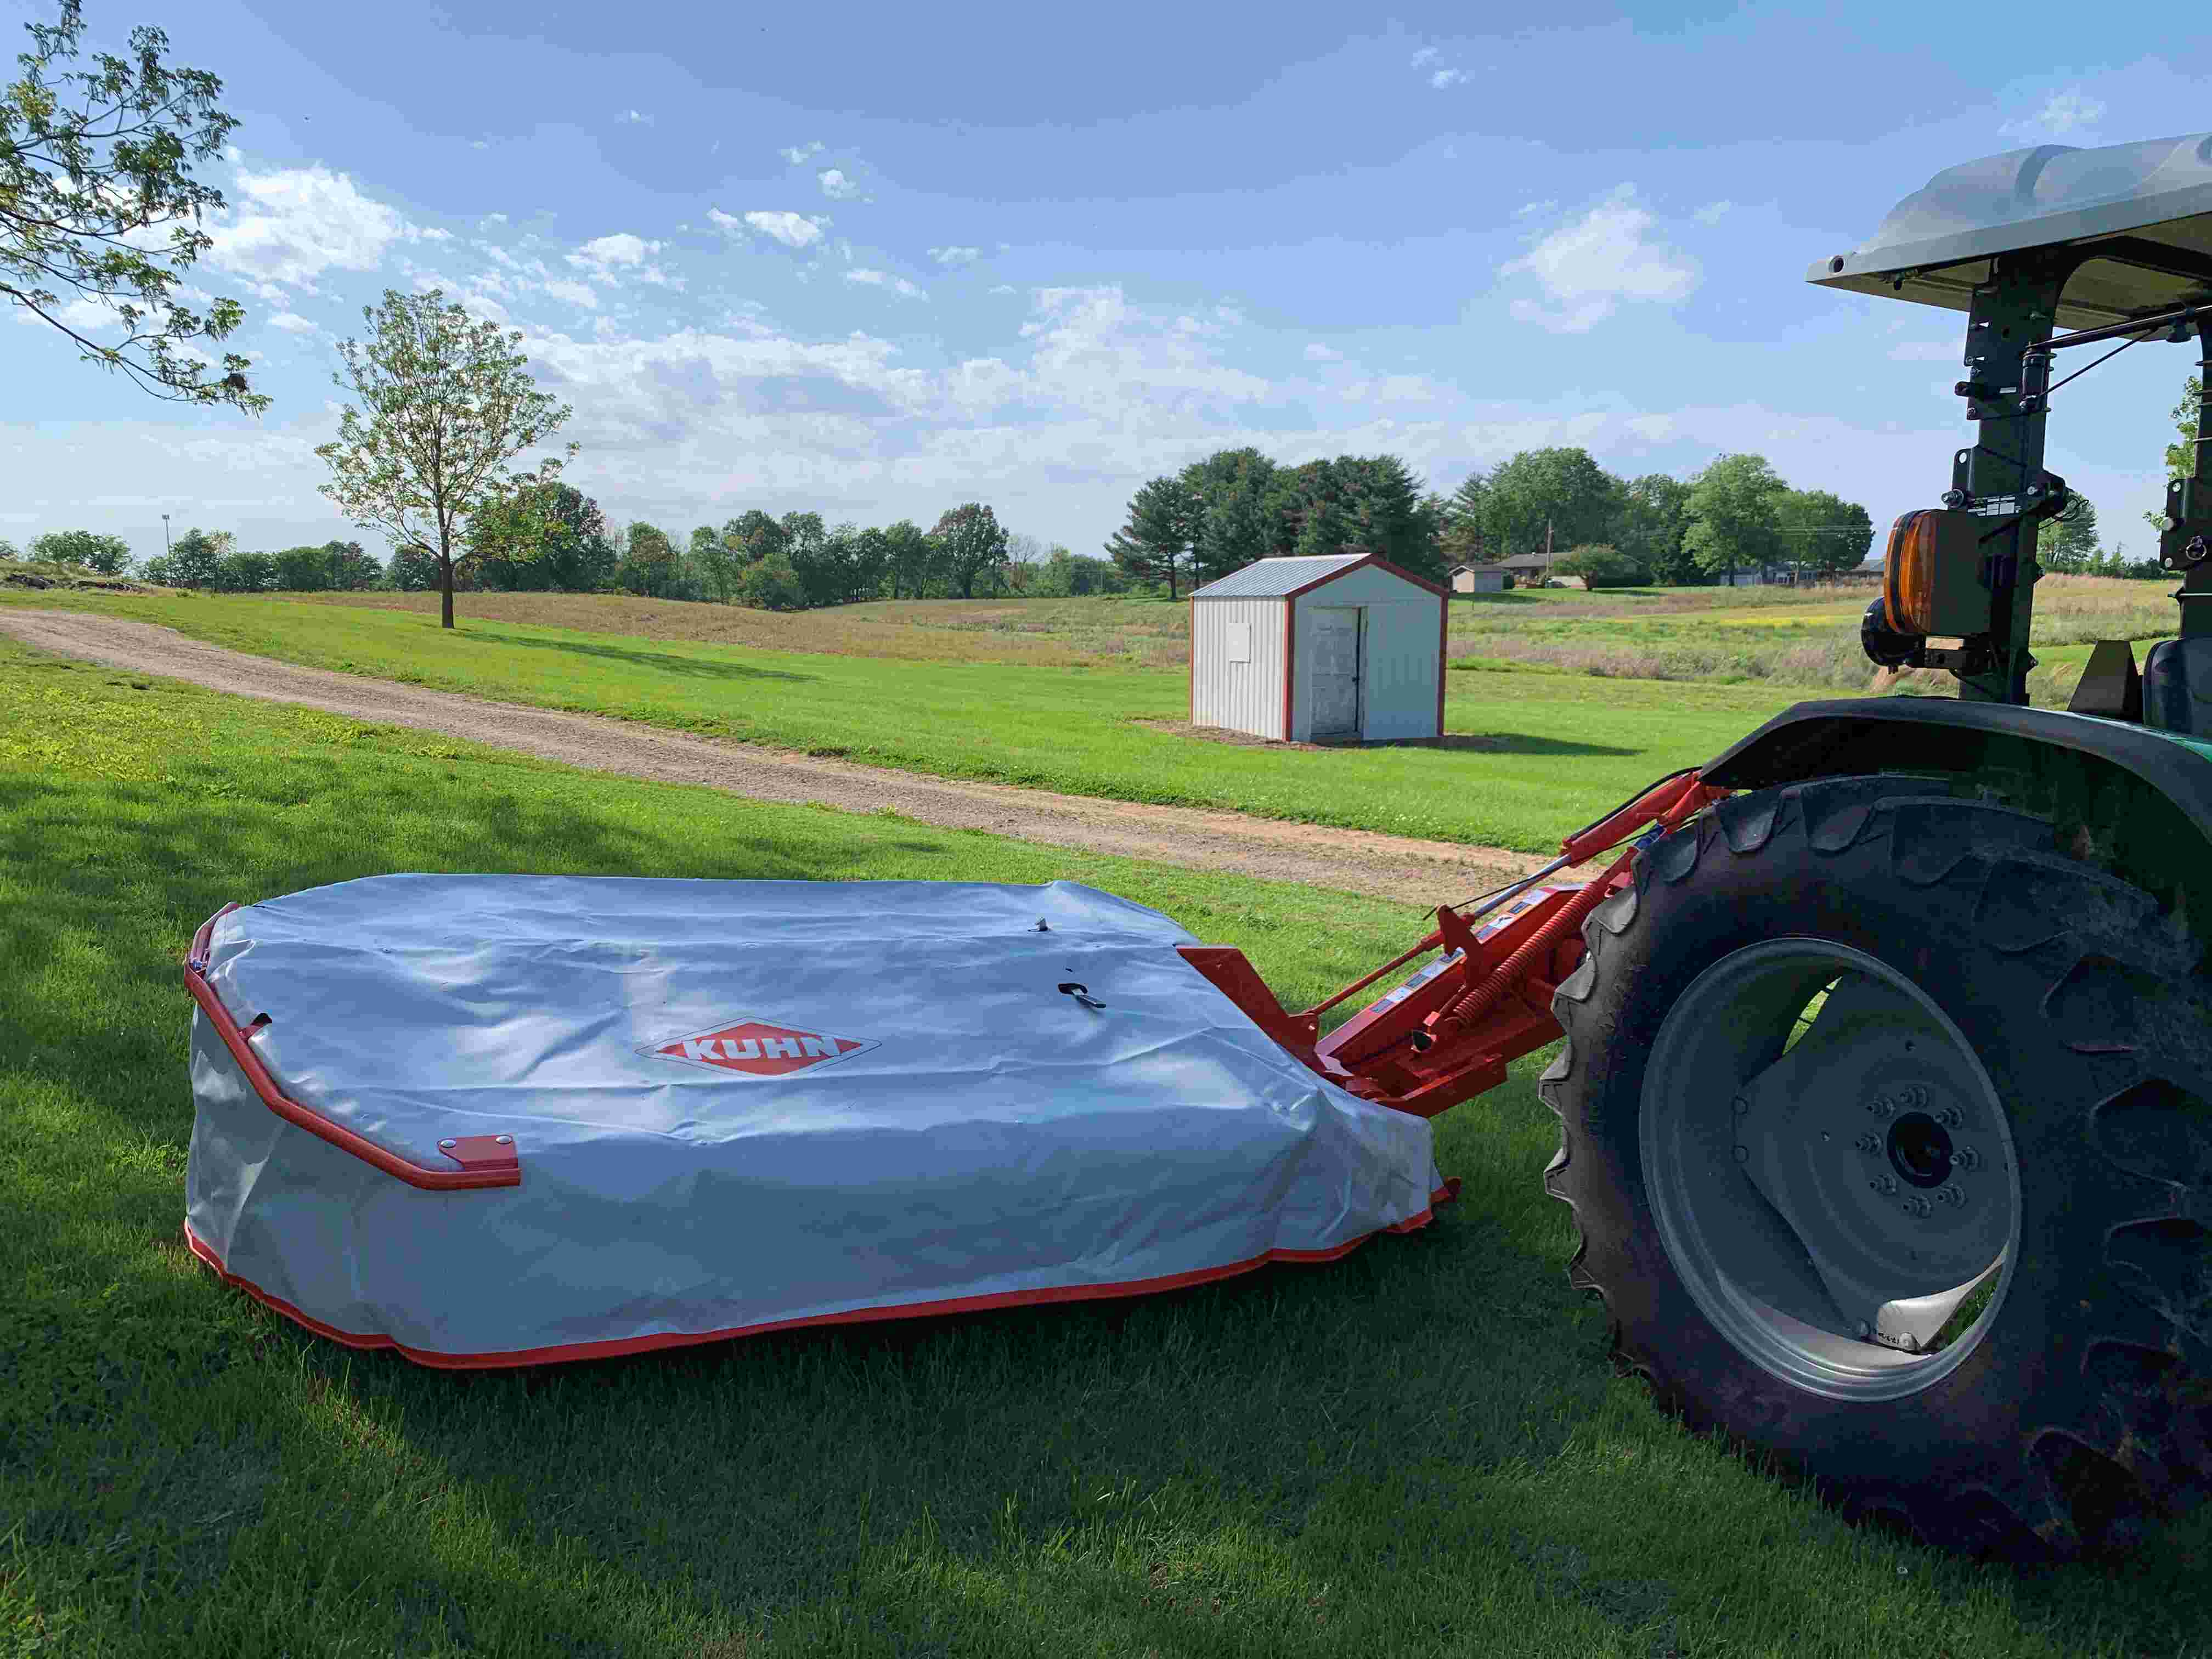 KUHN GMD24 7ft 10in Vertical Disc Mower